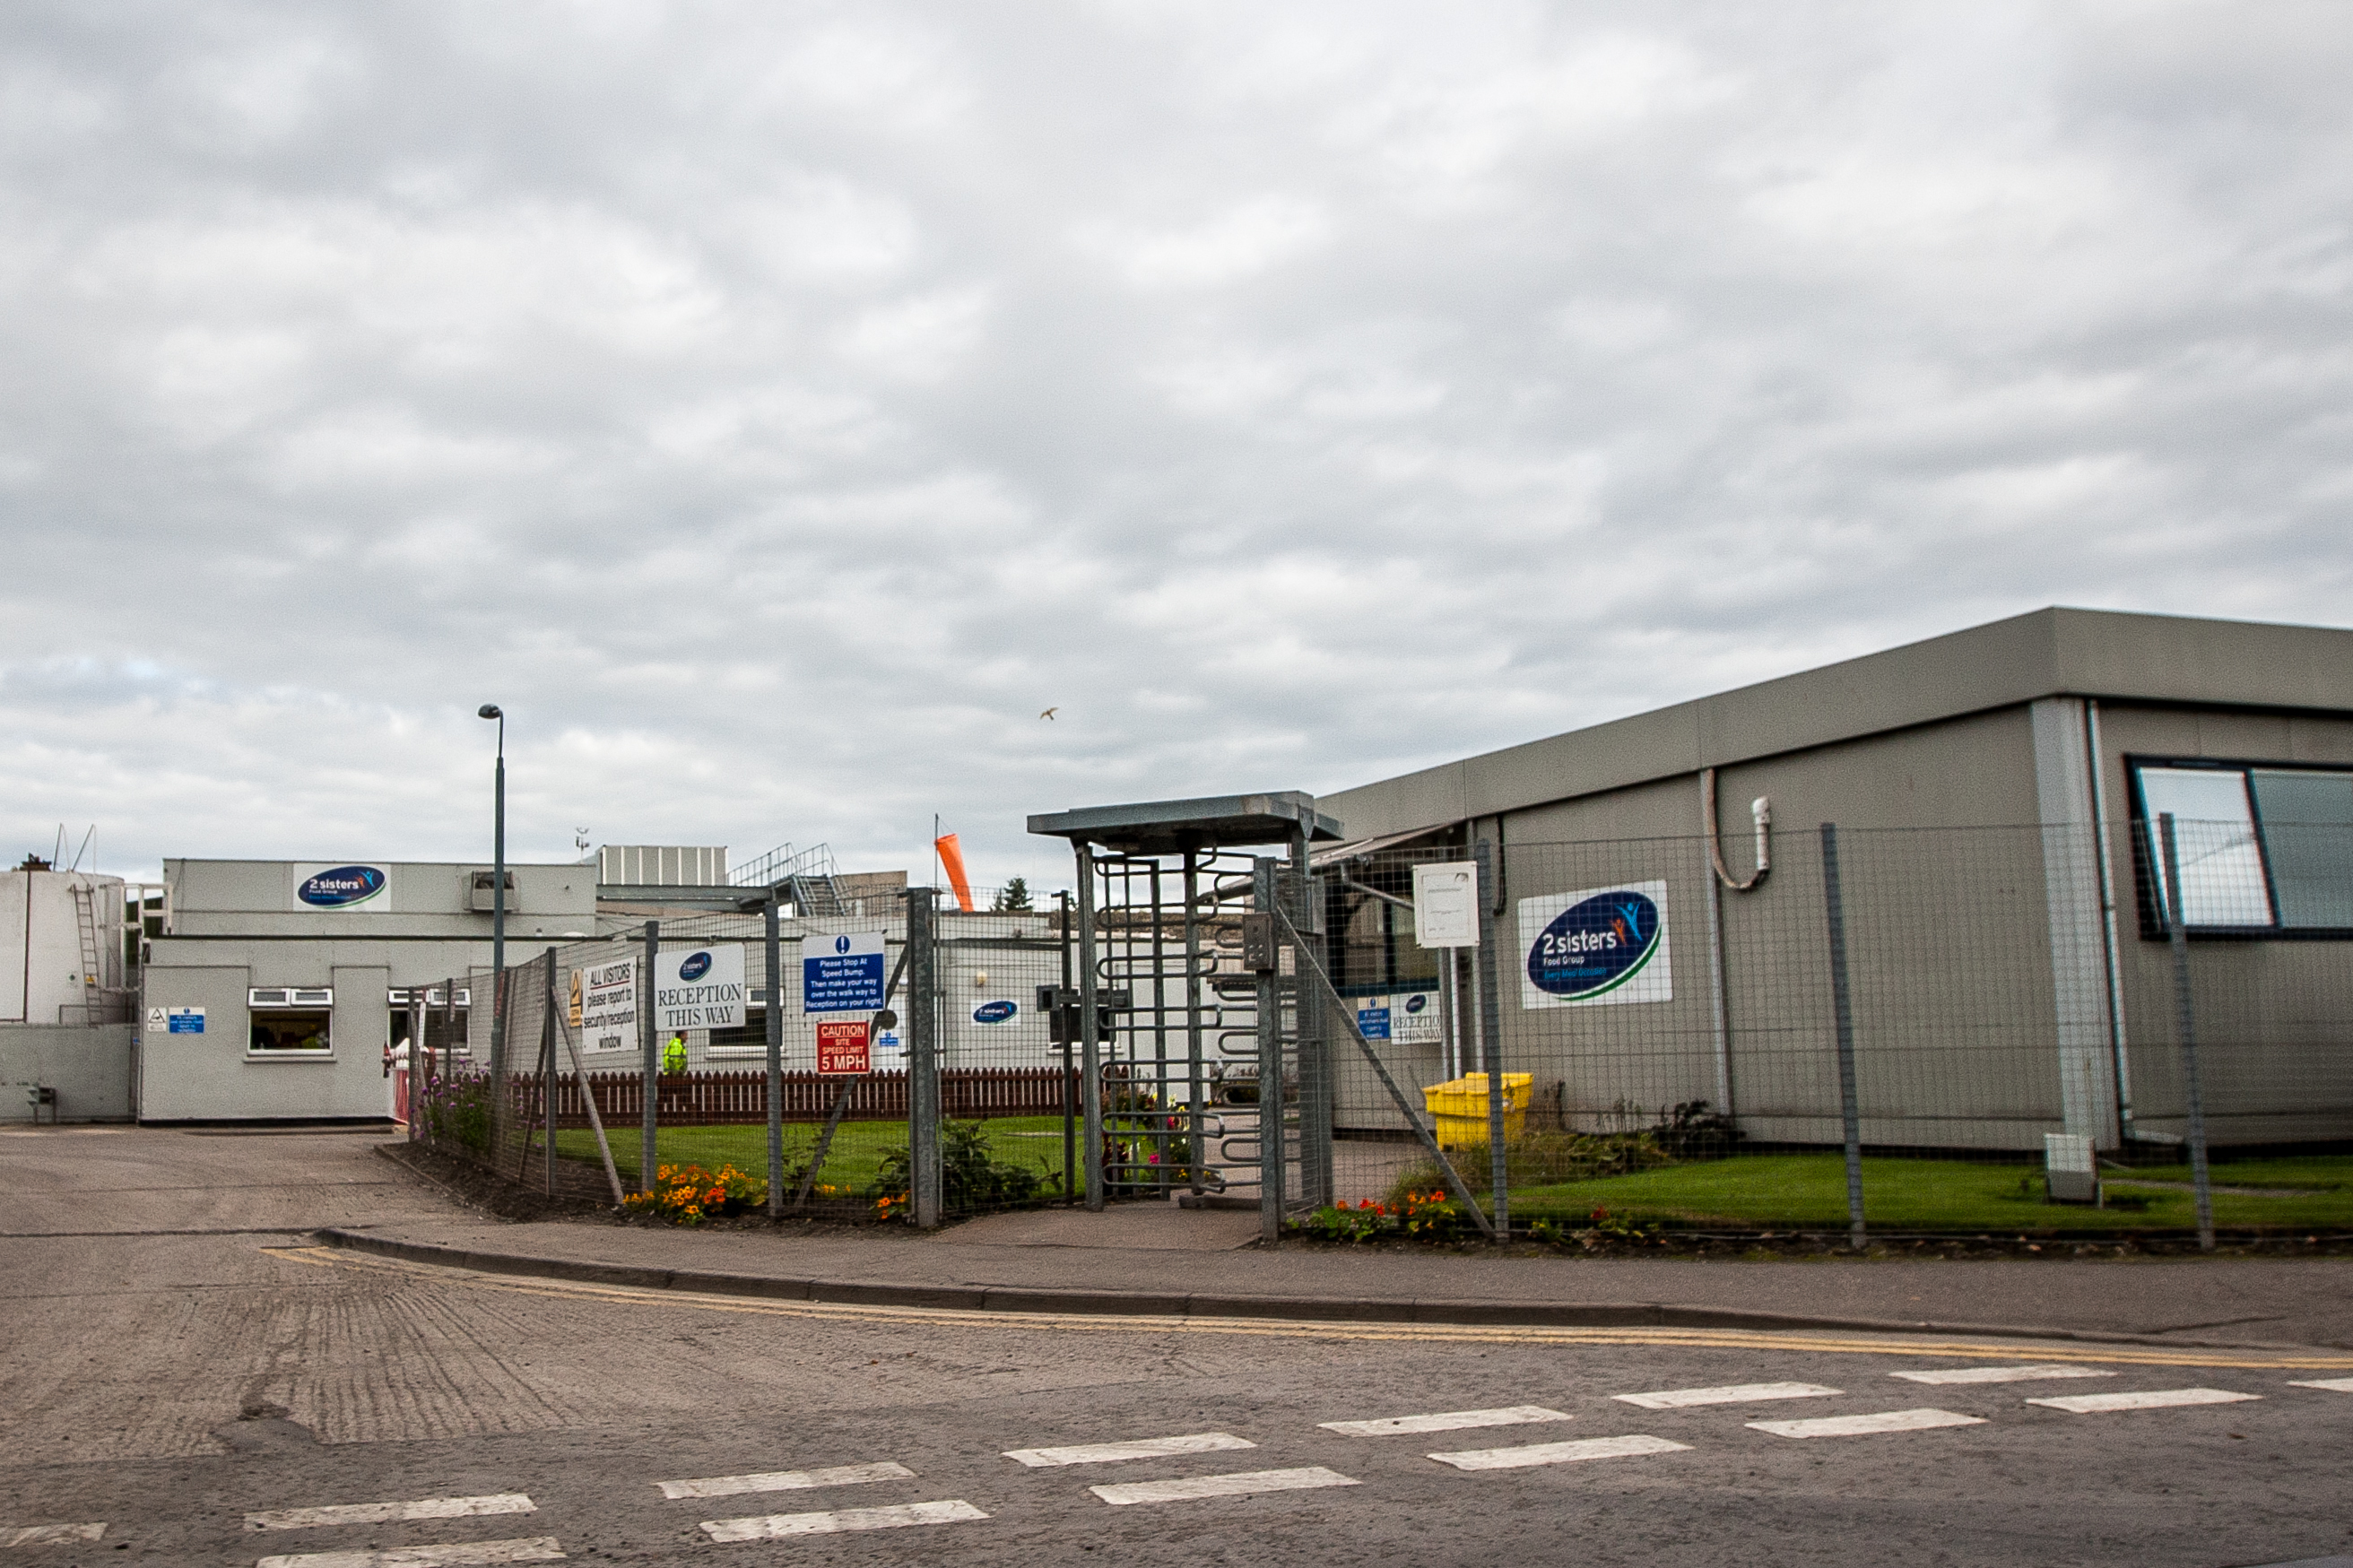 The entrance to the 2 Sisters Food Group site in Coupar Angus.